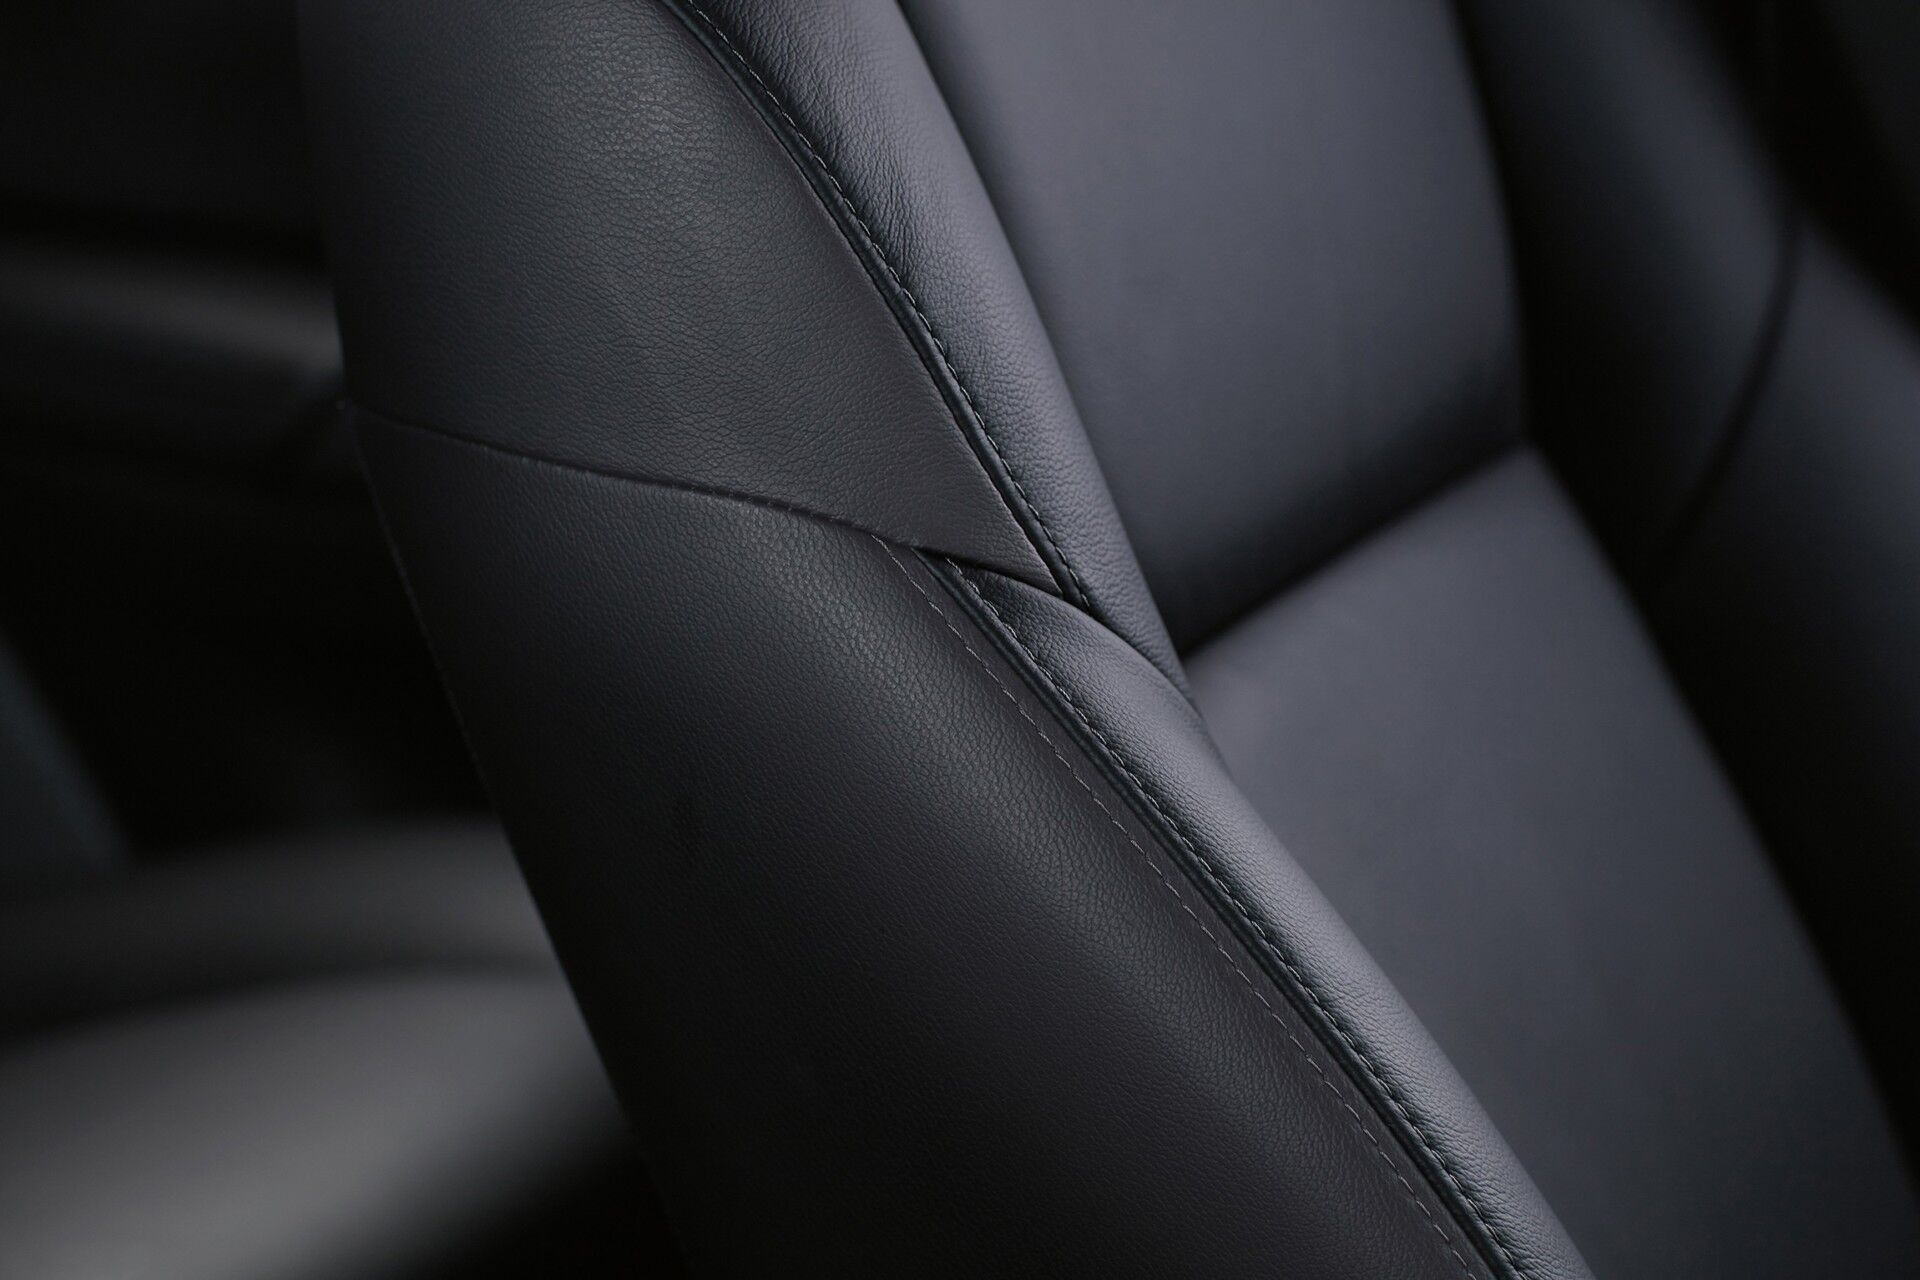 XWrqIAreRijldwLbt Pajero Sport MY leather detail small